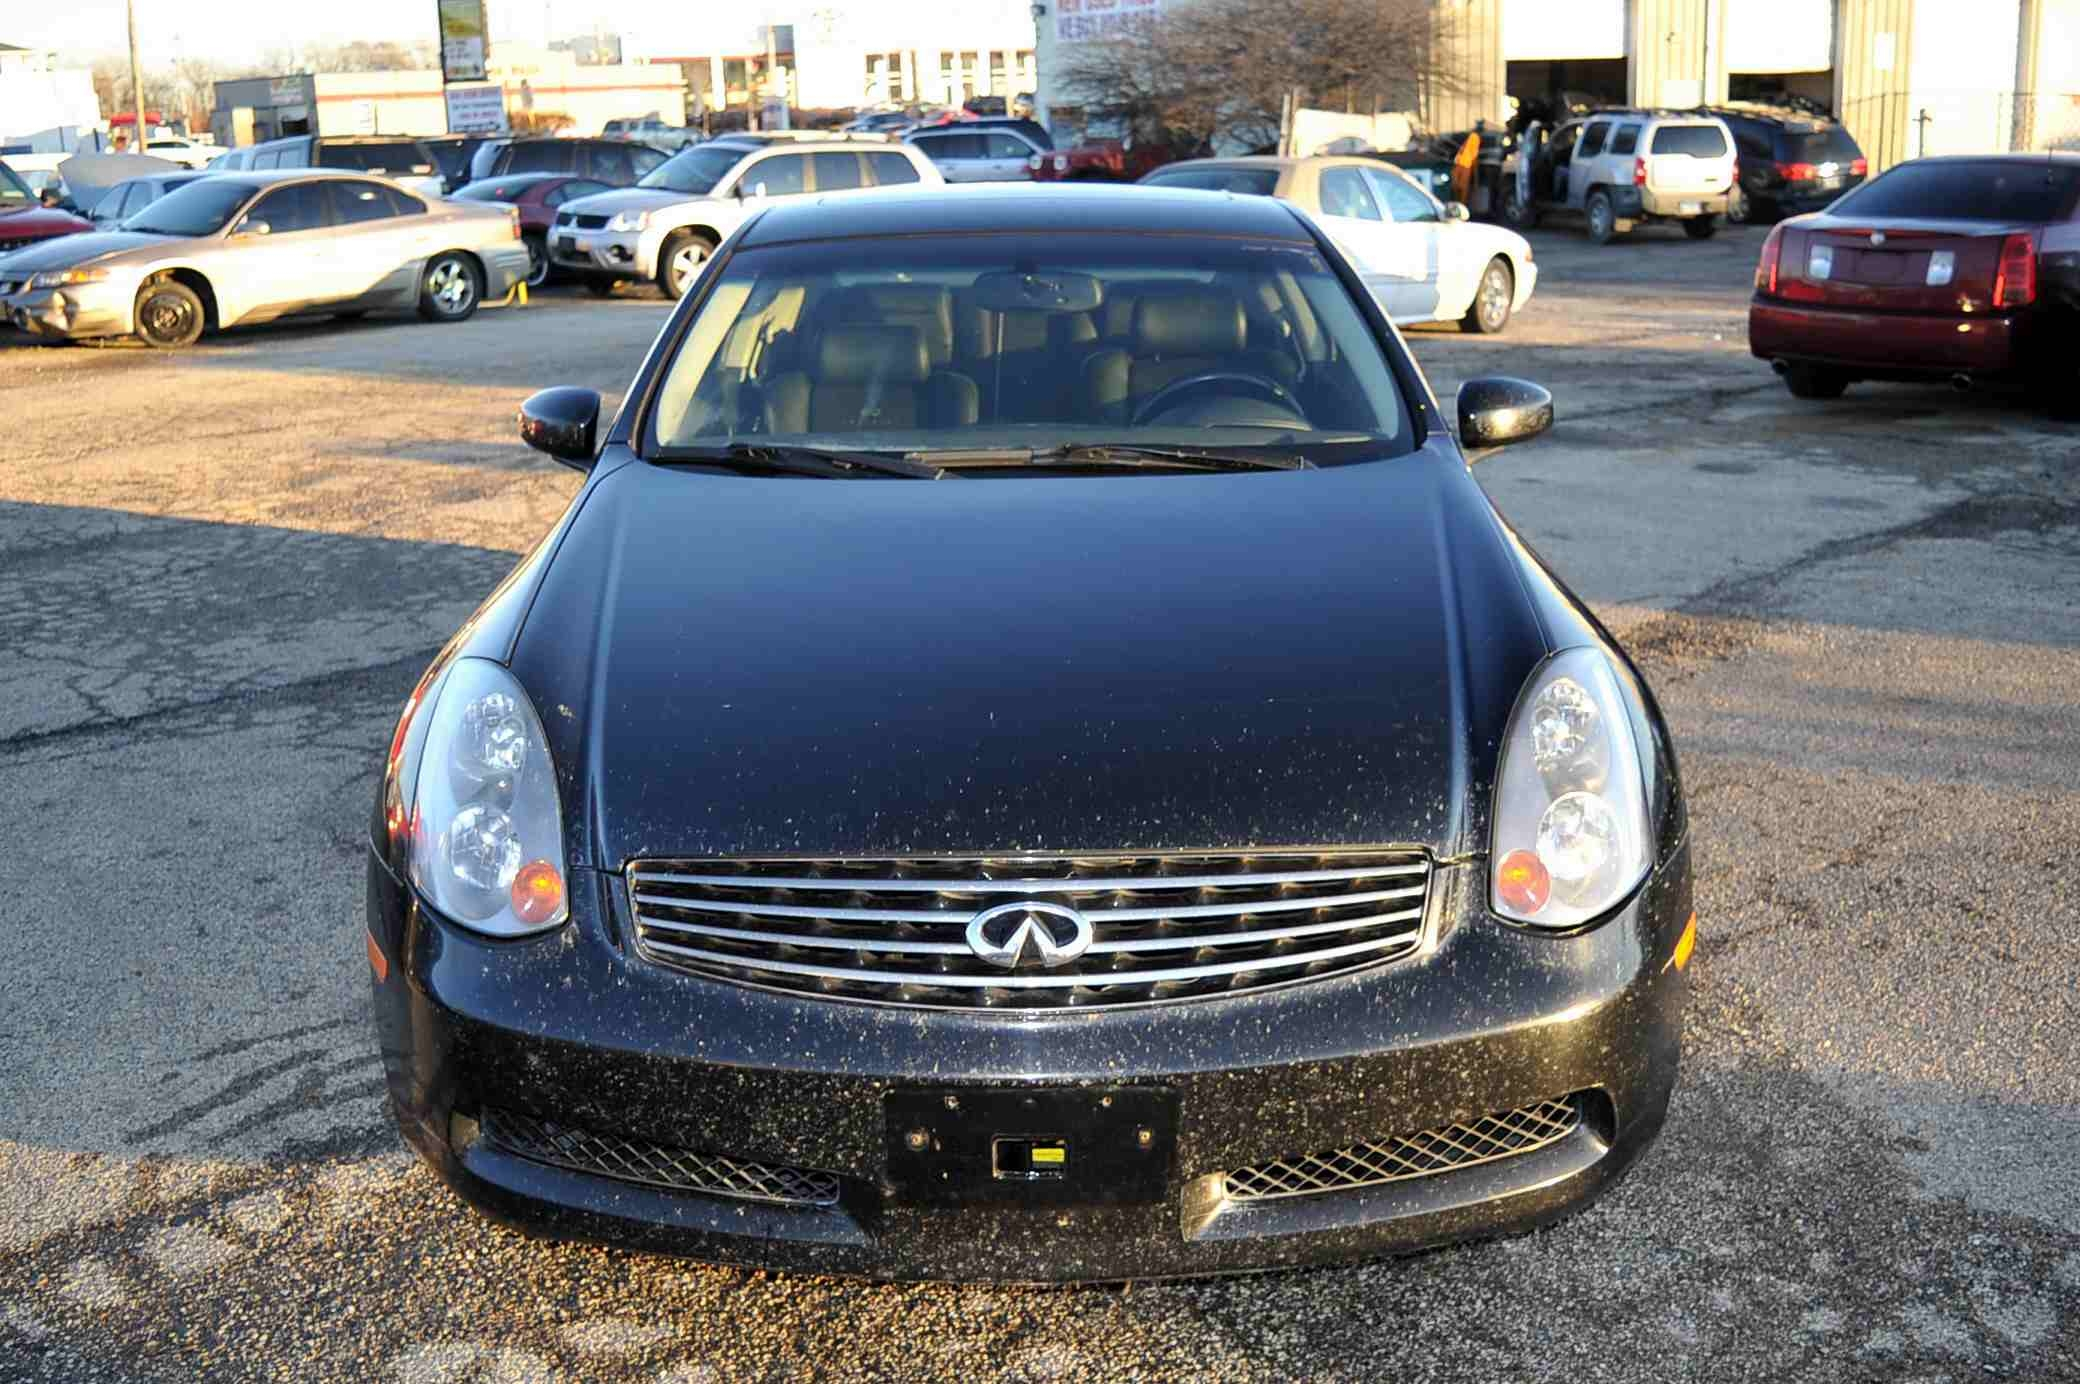 2005 Infiniti G35 Black Coupe Used Car Sale Gurnee Kenosha Mchenry Chicago Illinois